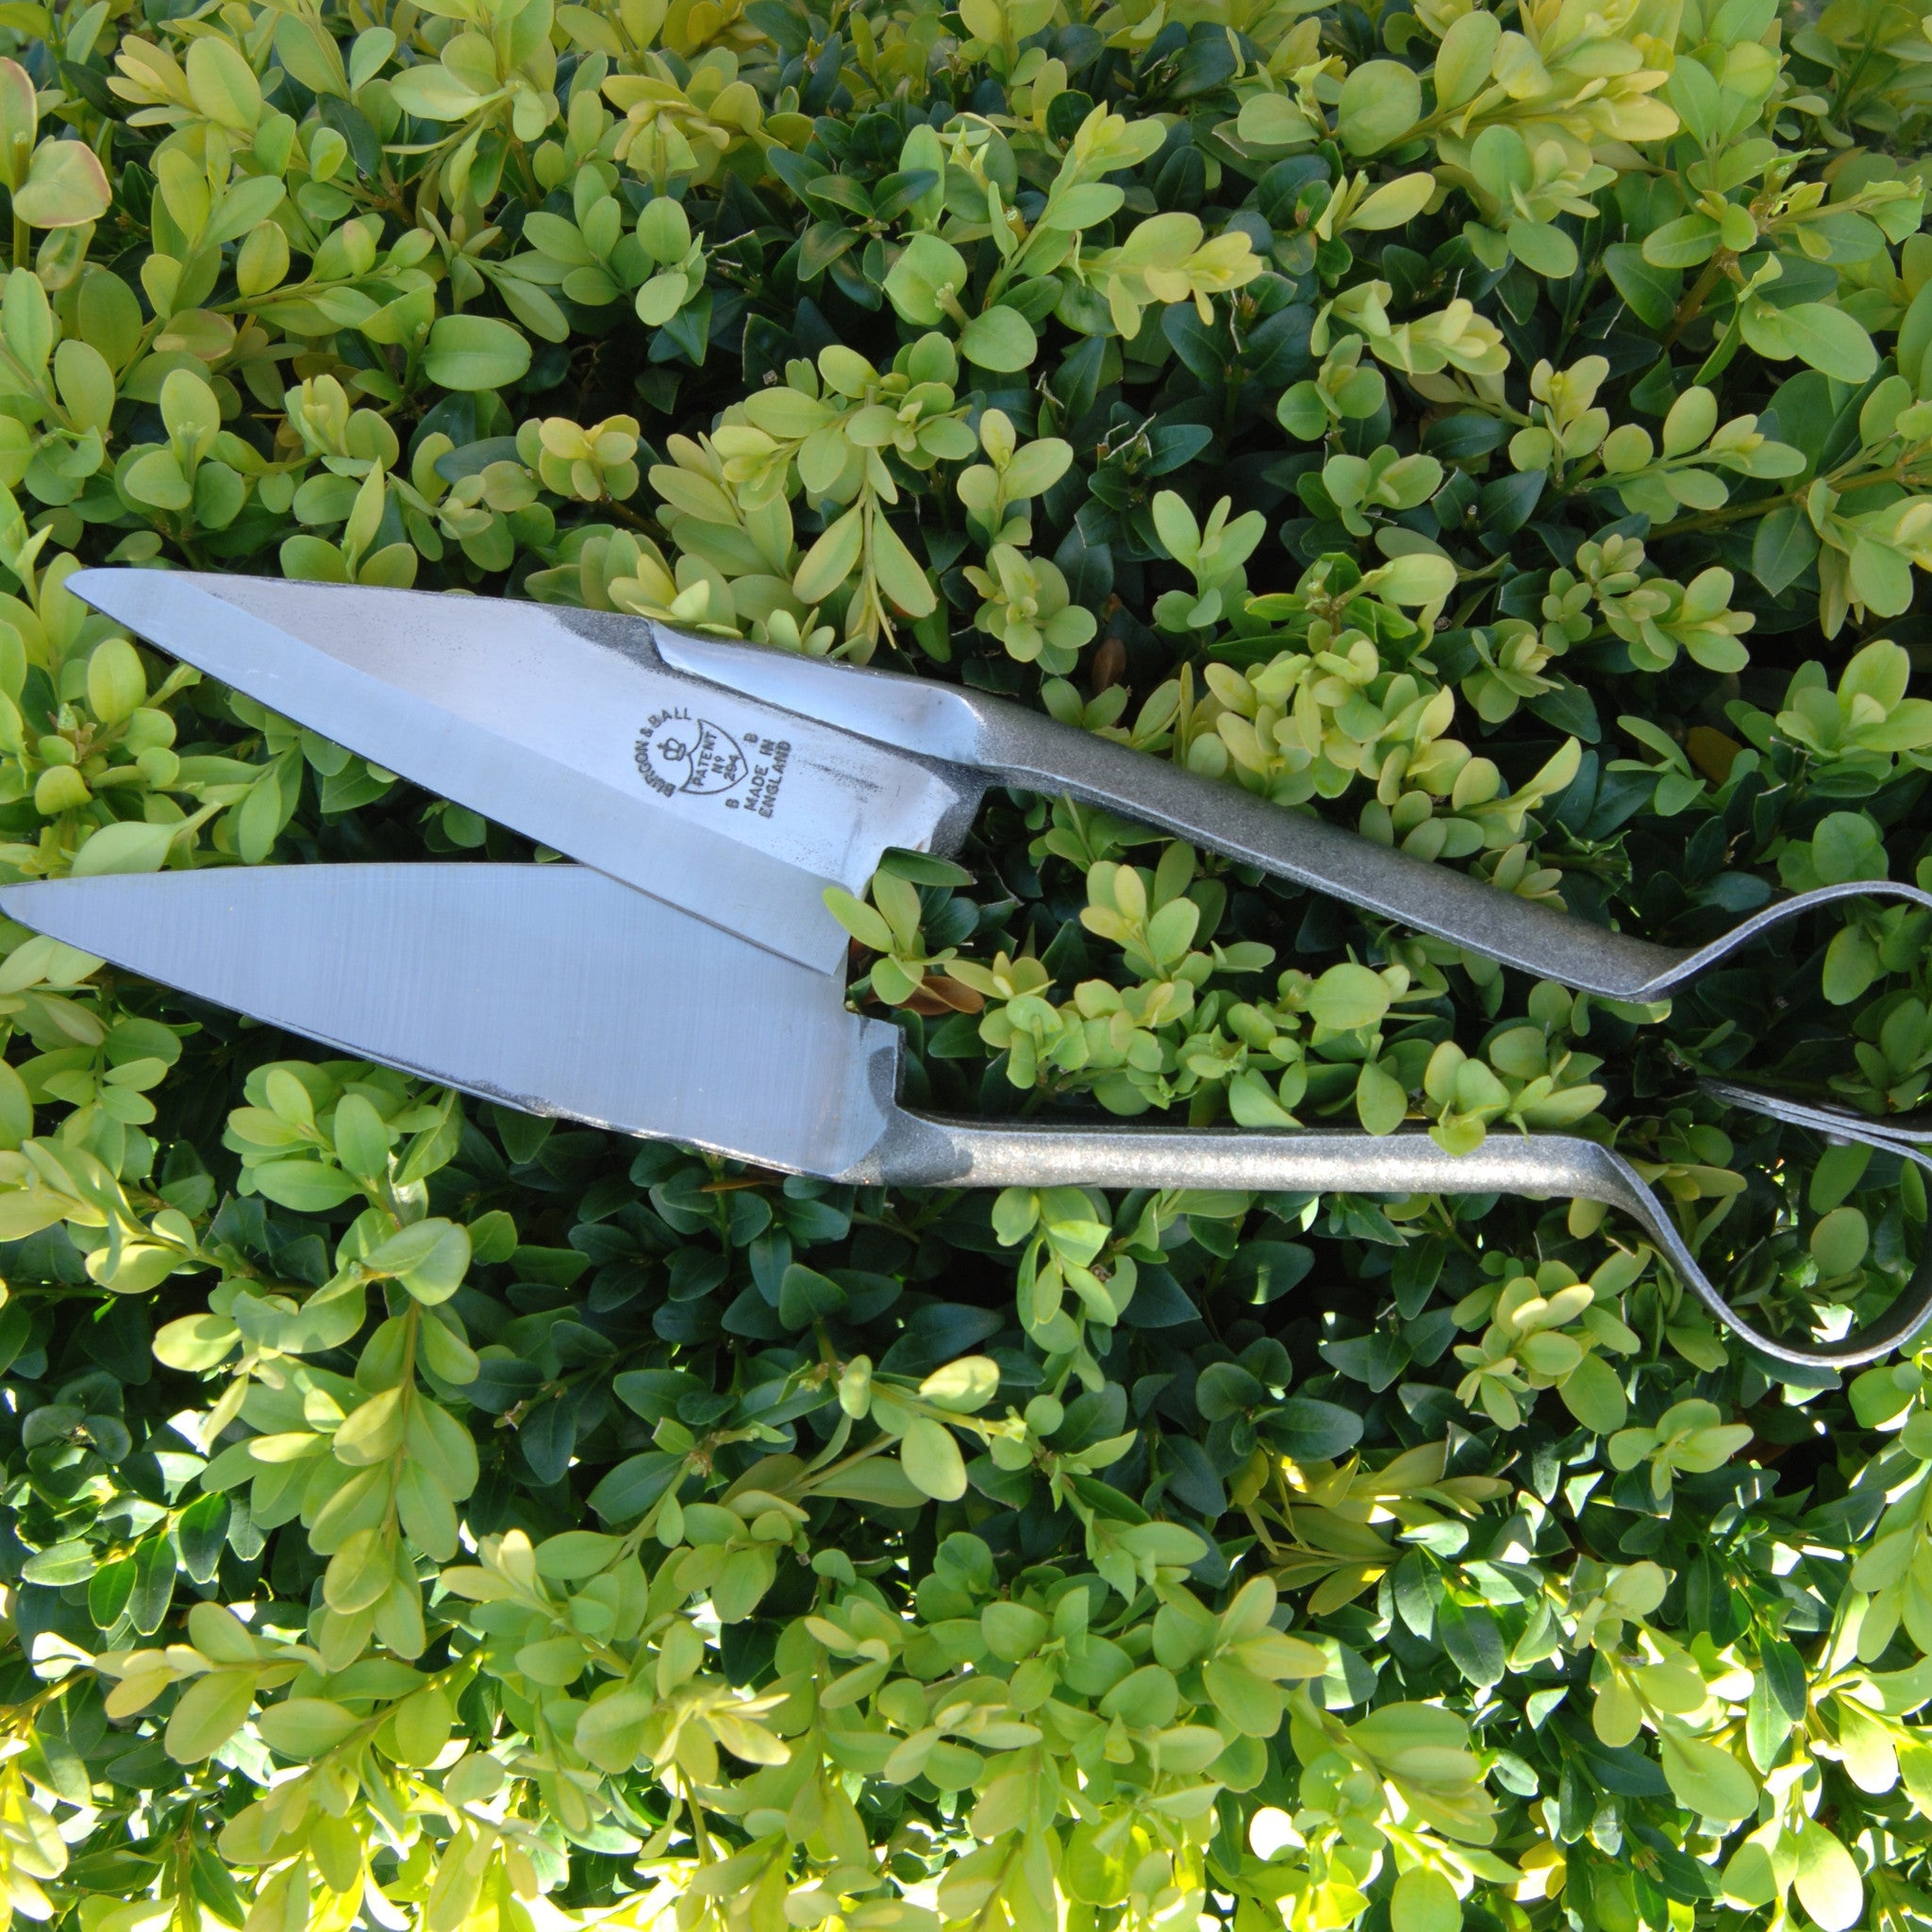 Topiary Shears - Small Professional Soft Squeeze - The Potting Shed Garden Tools